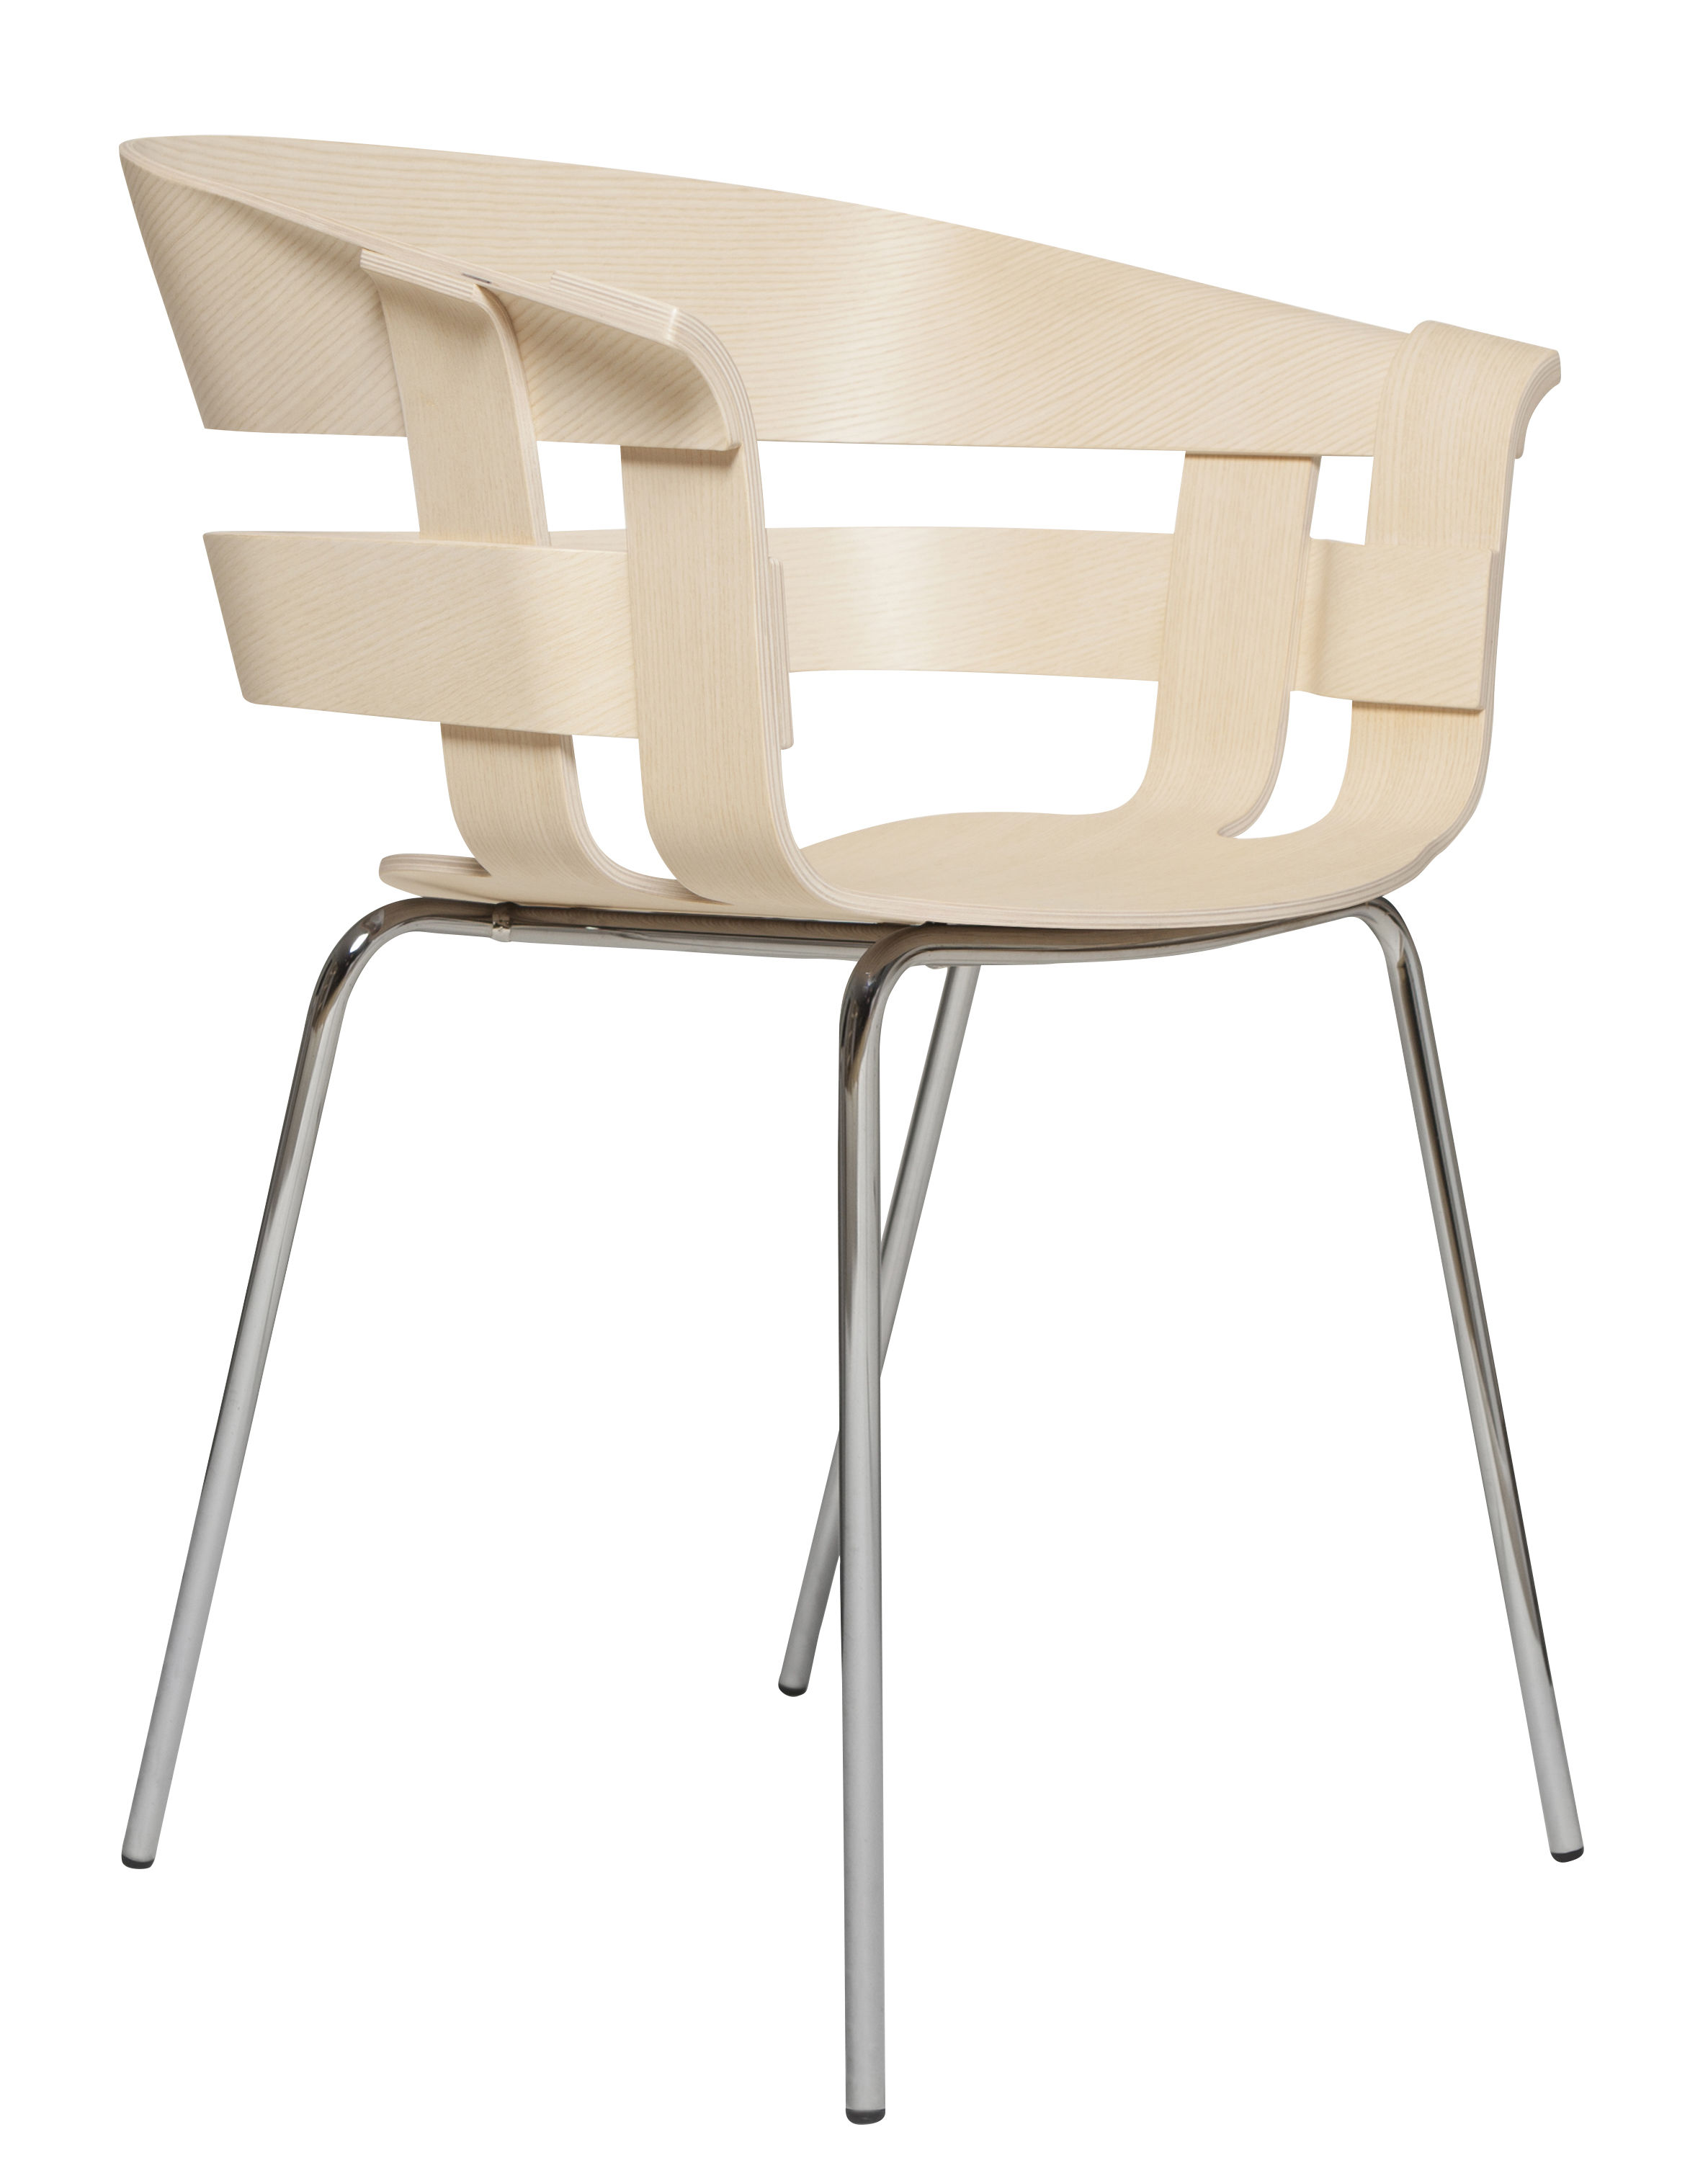 Sessel Glänzend Wick Sessel 4 Beinig Design House Stockholm